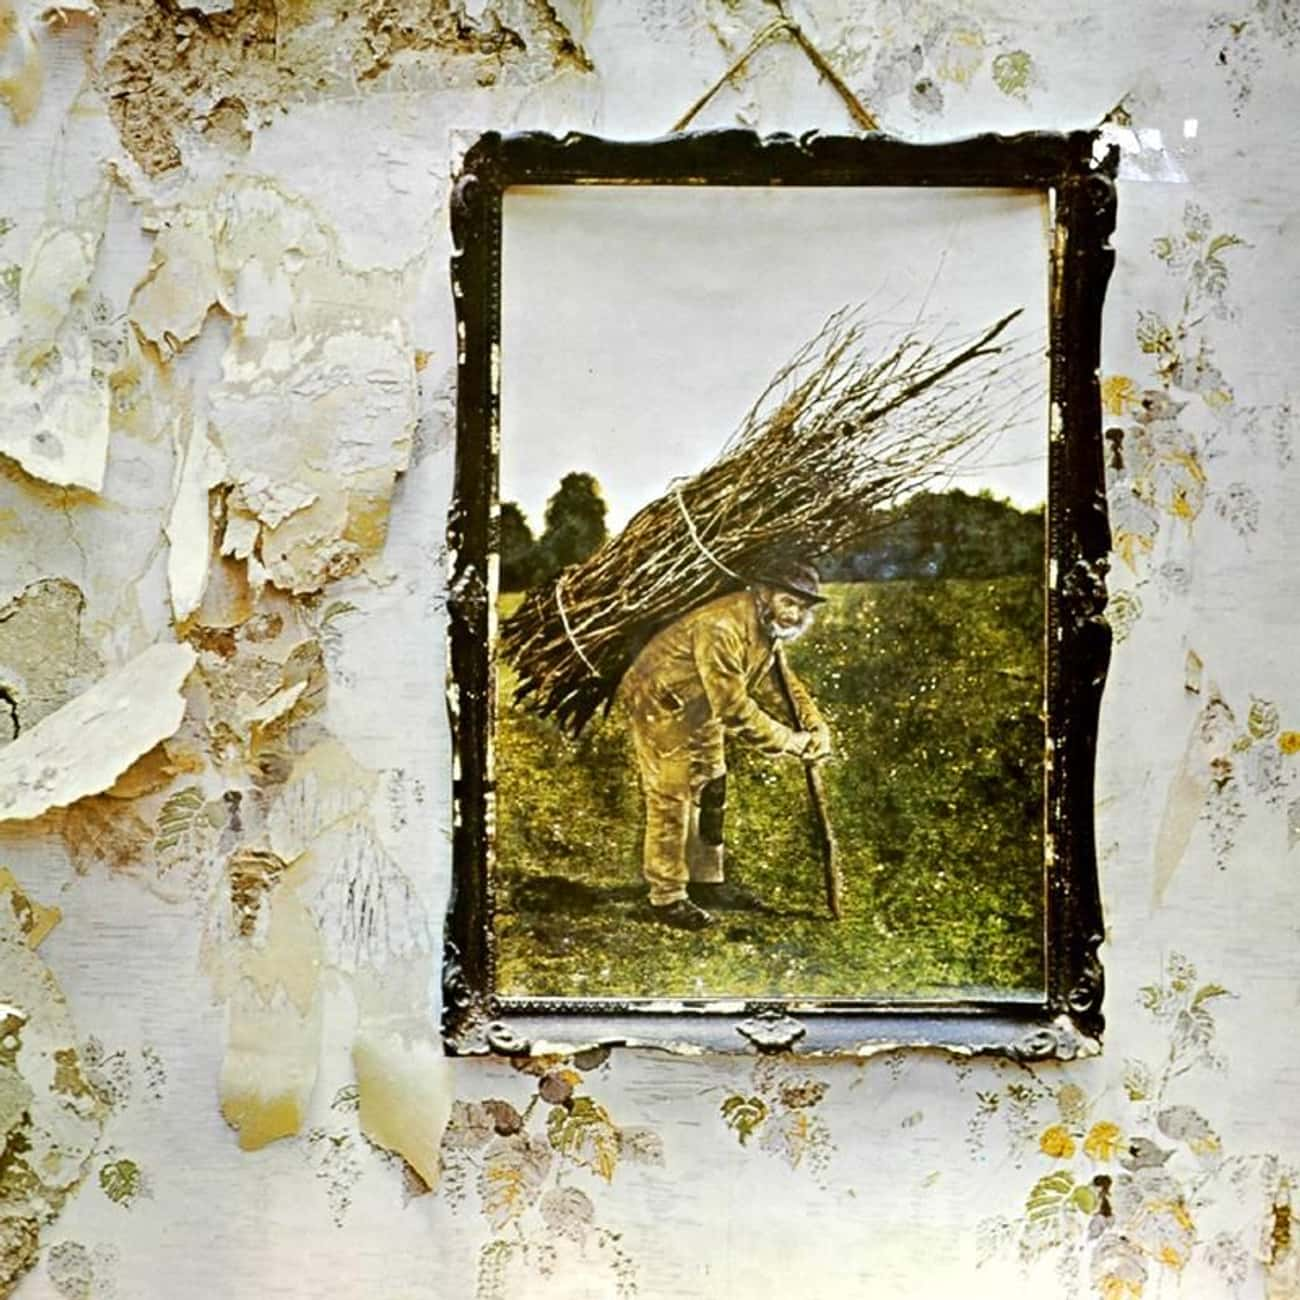 Led Zeppelin IV is listed (or ranked) 2 on the list The Best Led Zeppelin Albums of All Time